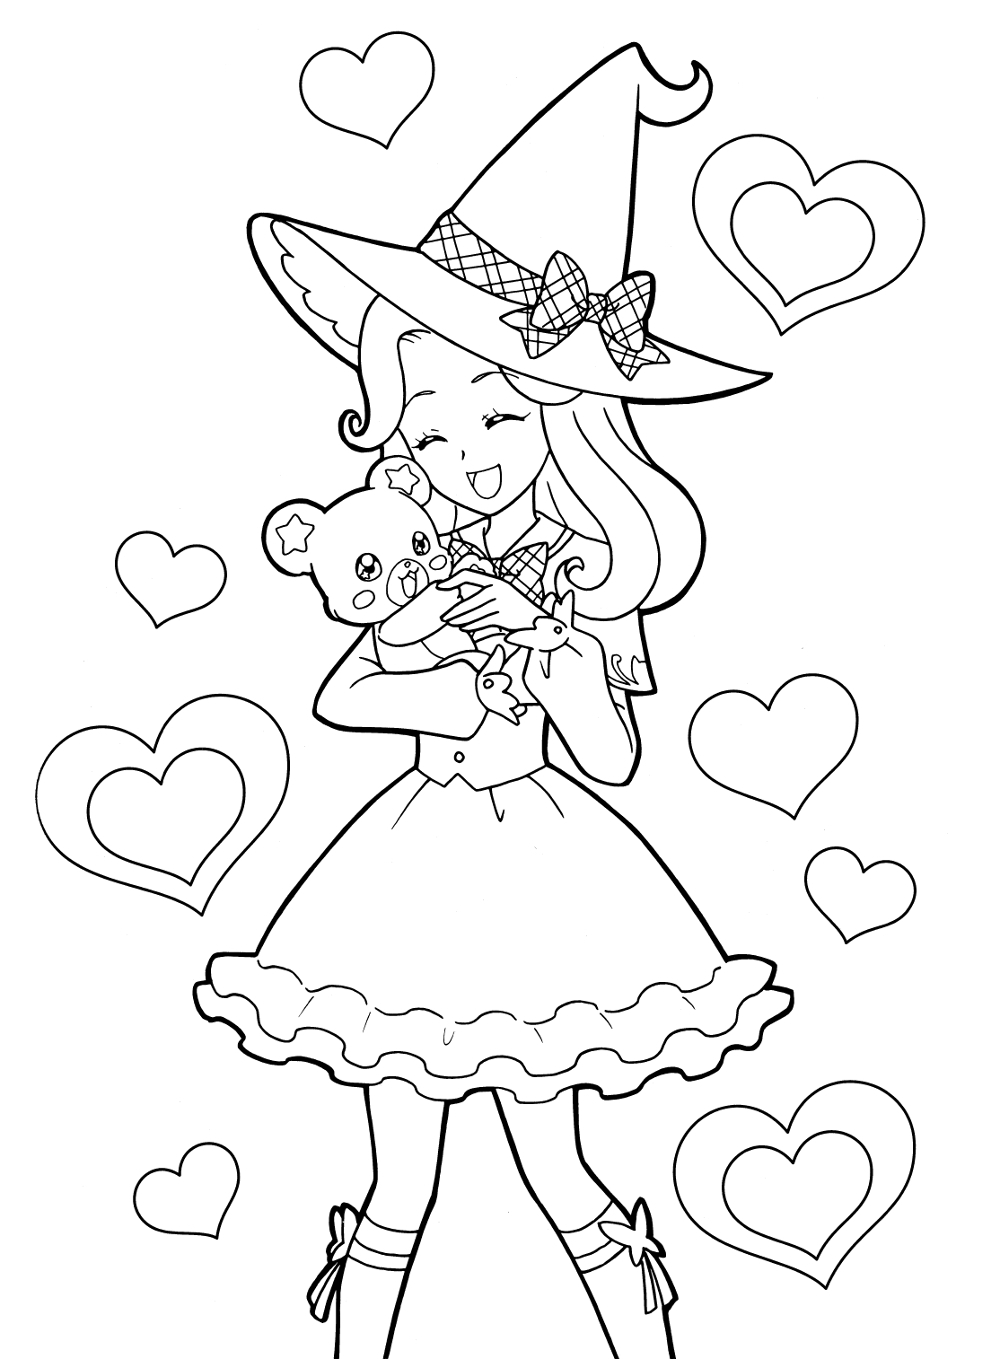 anime bff coloring pages anime best friends coloring pages at getcoloringscom coloring pages bff anime